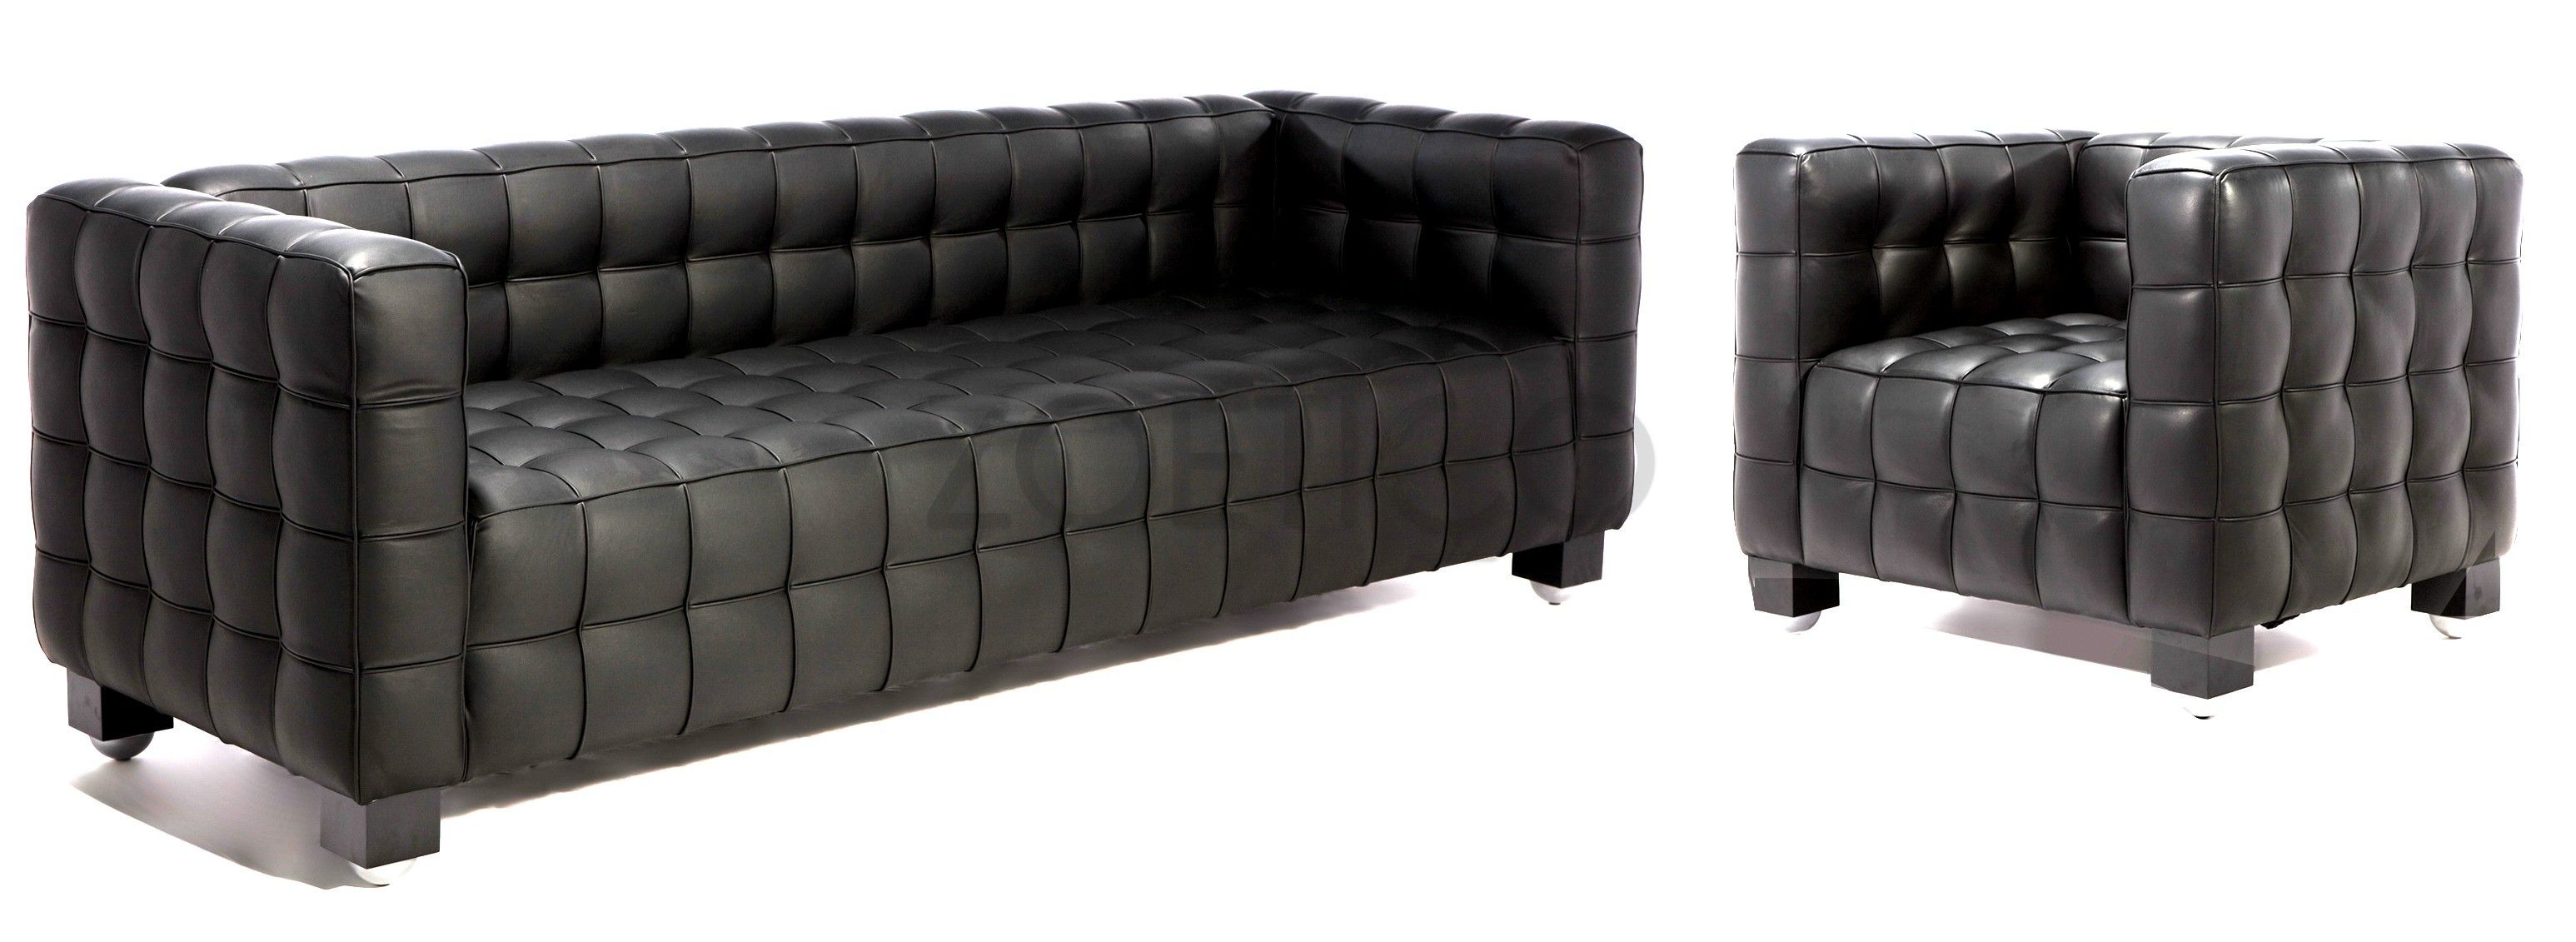 Josef Hoffmann Designs Style Kubus Suite Sofa In And Chair